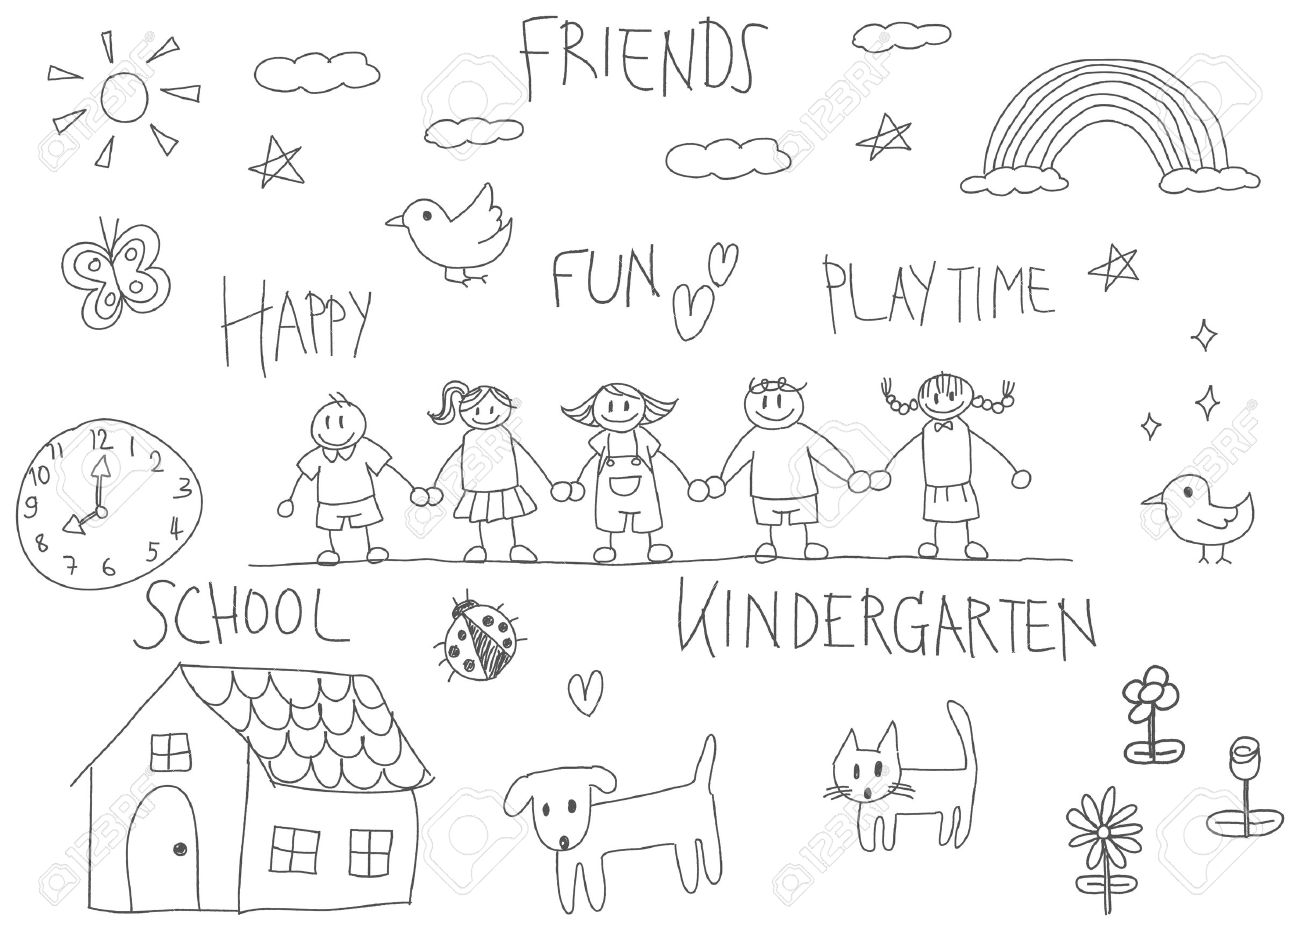 Kindergarten children pencil doodle drawing of a friend and kid imagination playing environment such as animal cat dog pet house flower rainbow and star in